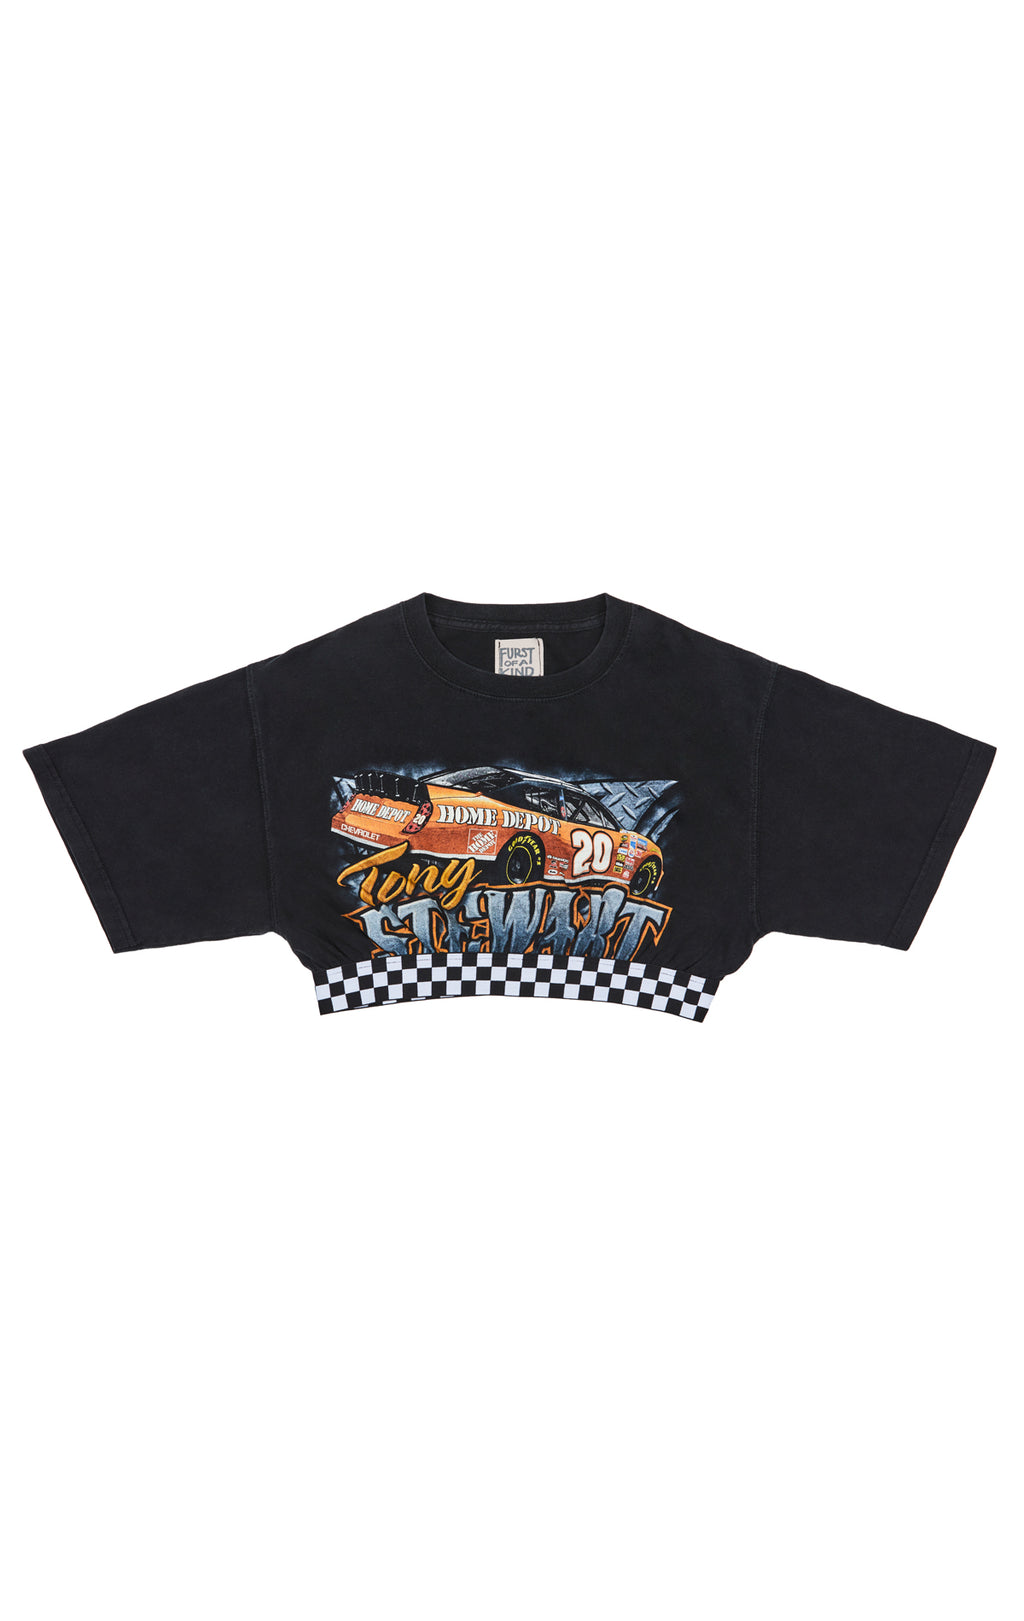 FURST OF A KIND CHECKERED CONTRAST CROP TEE FRONT